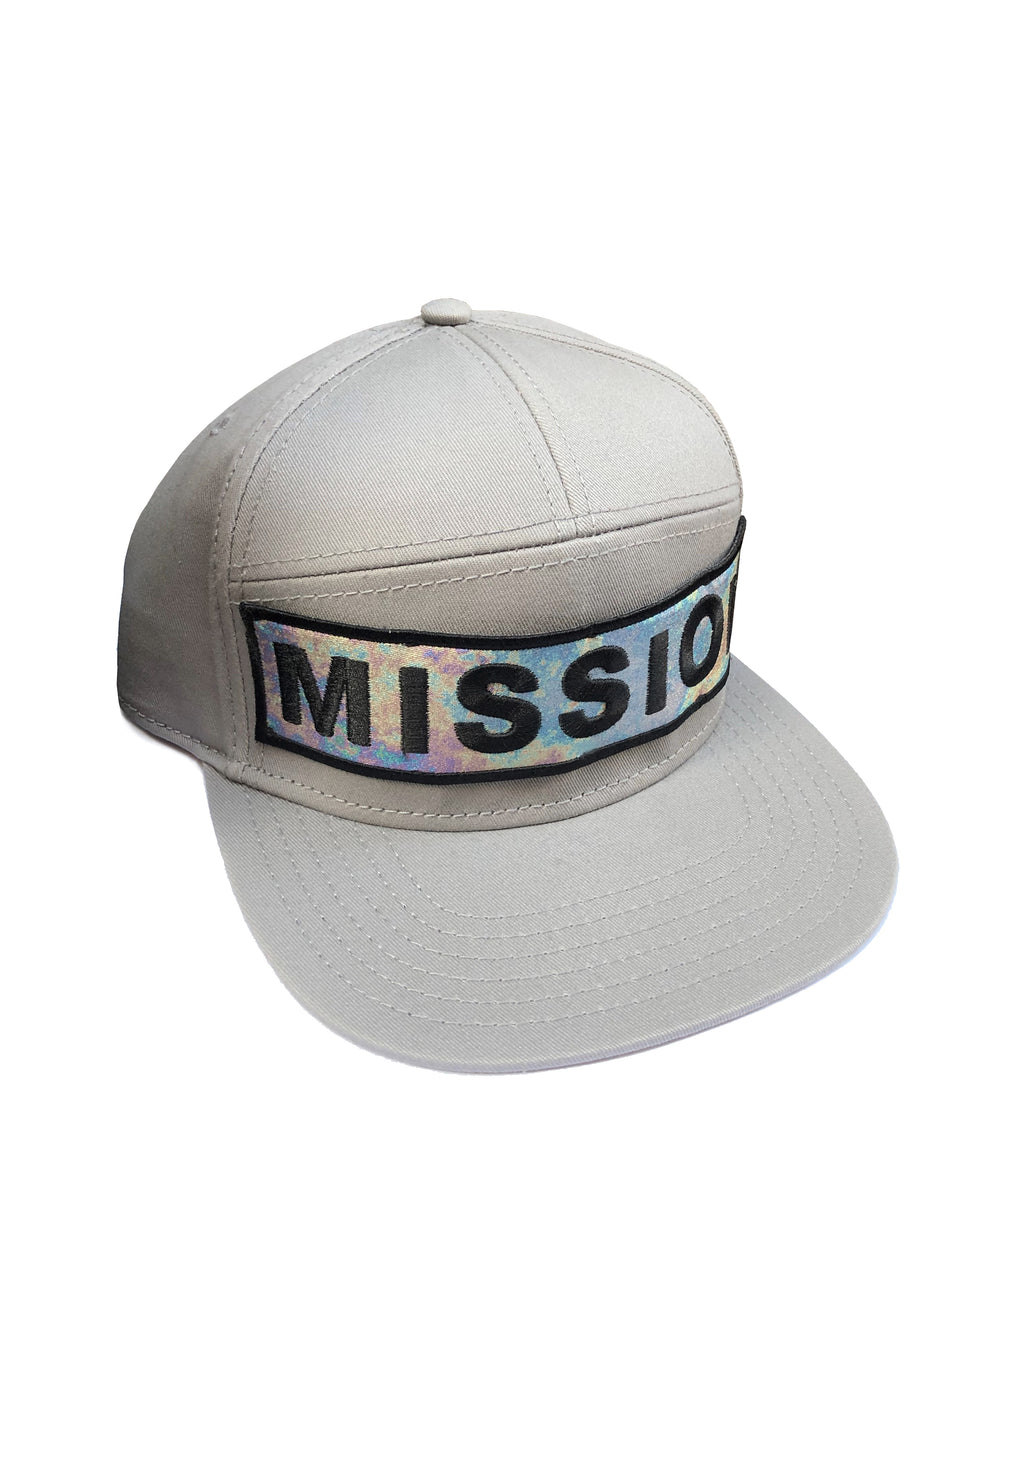 Baseball cap MISSION grey - One Wolf